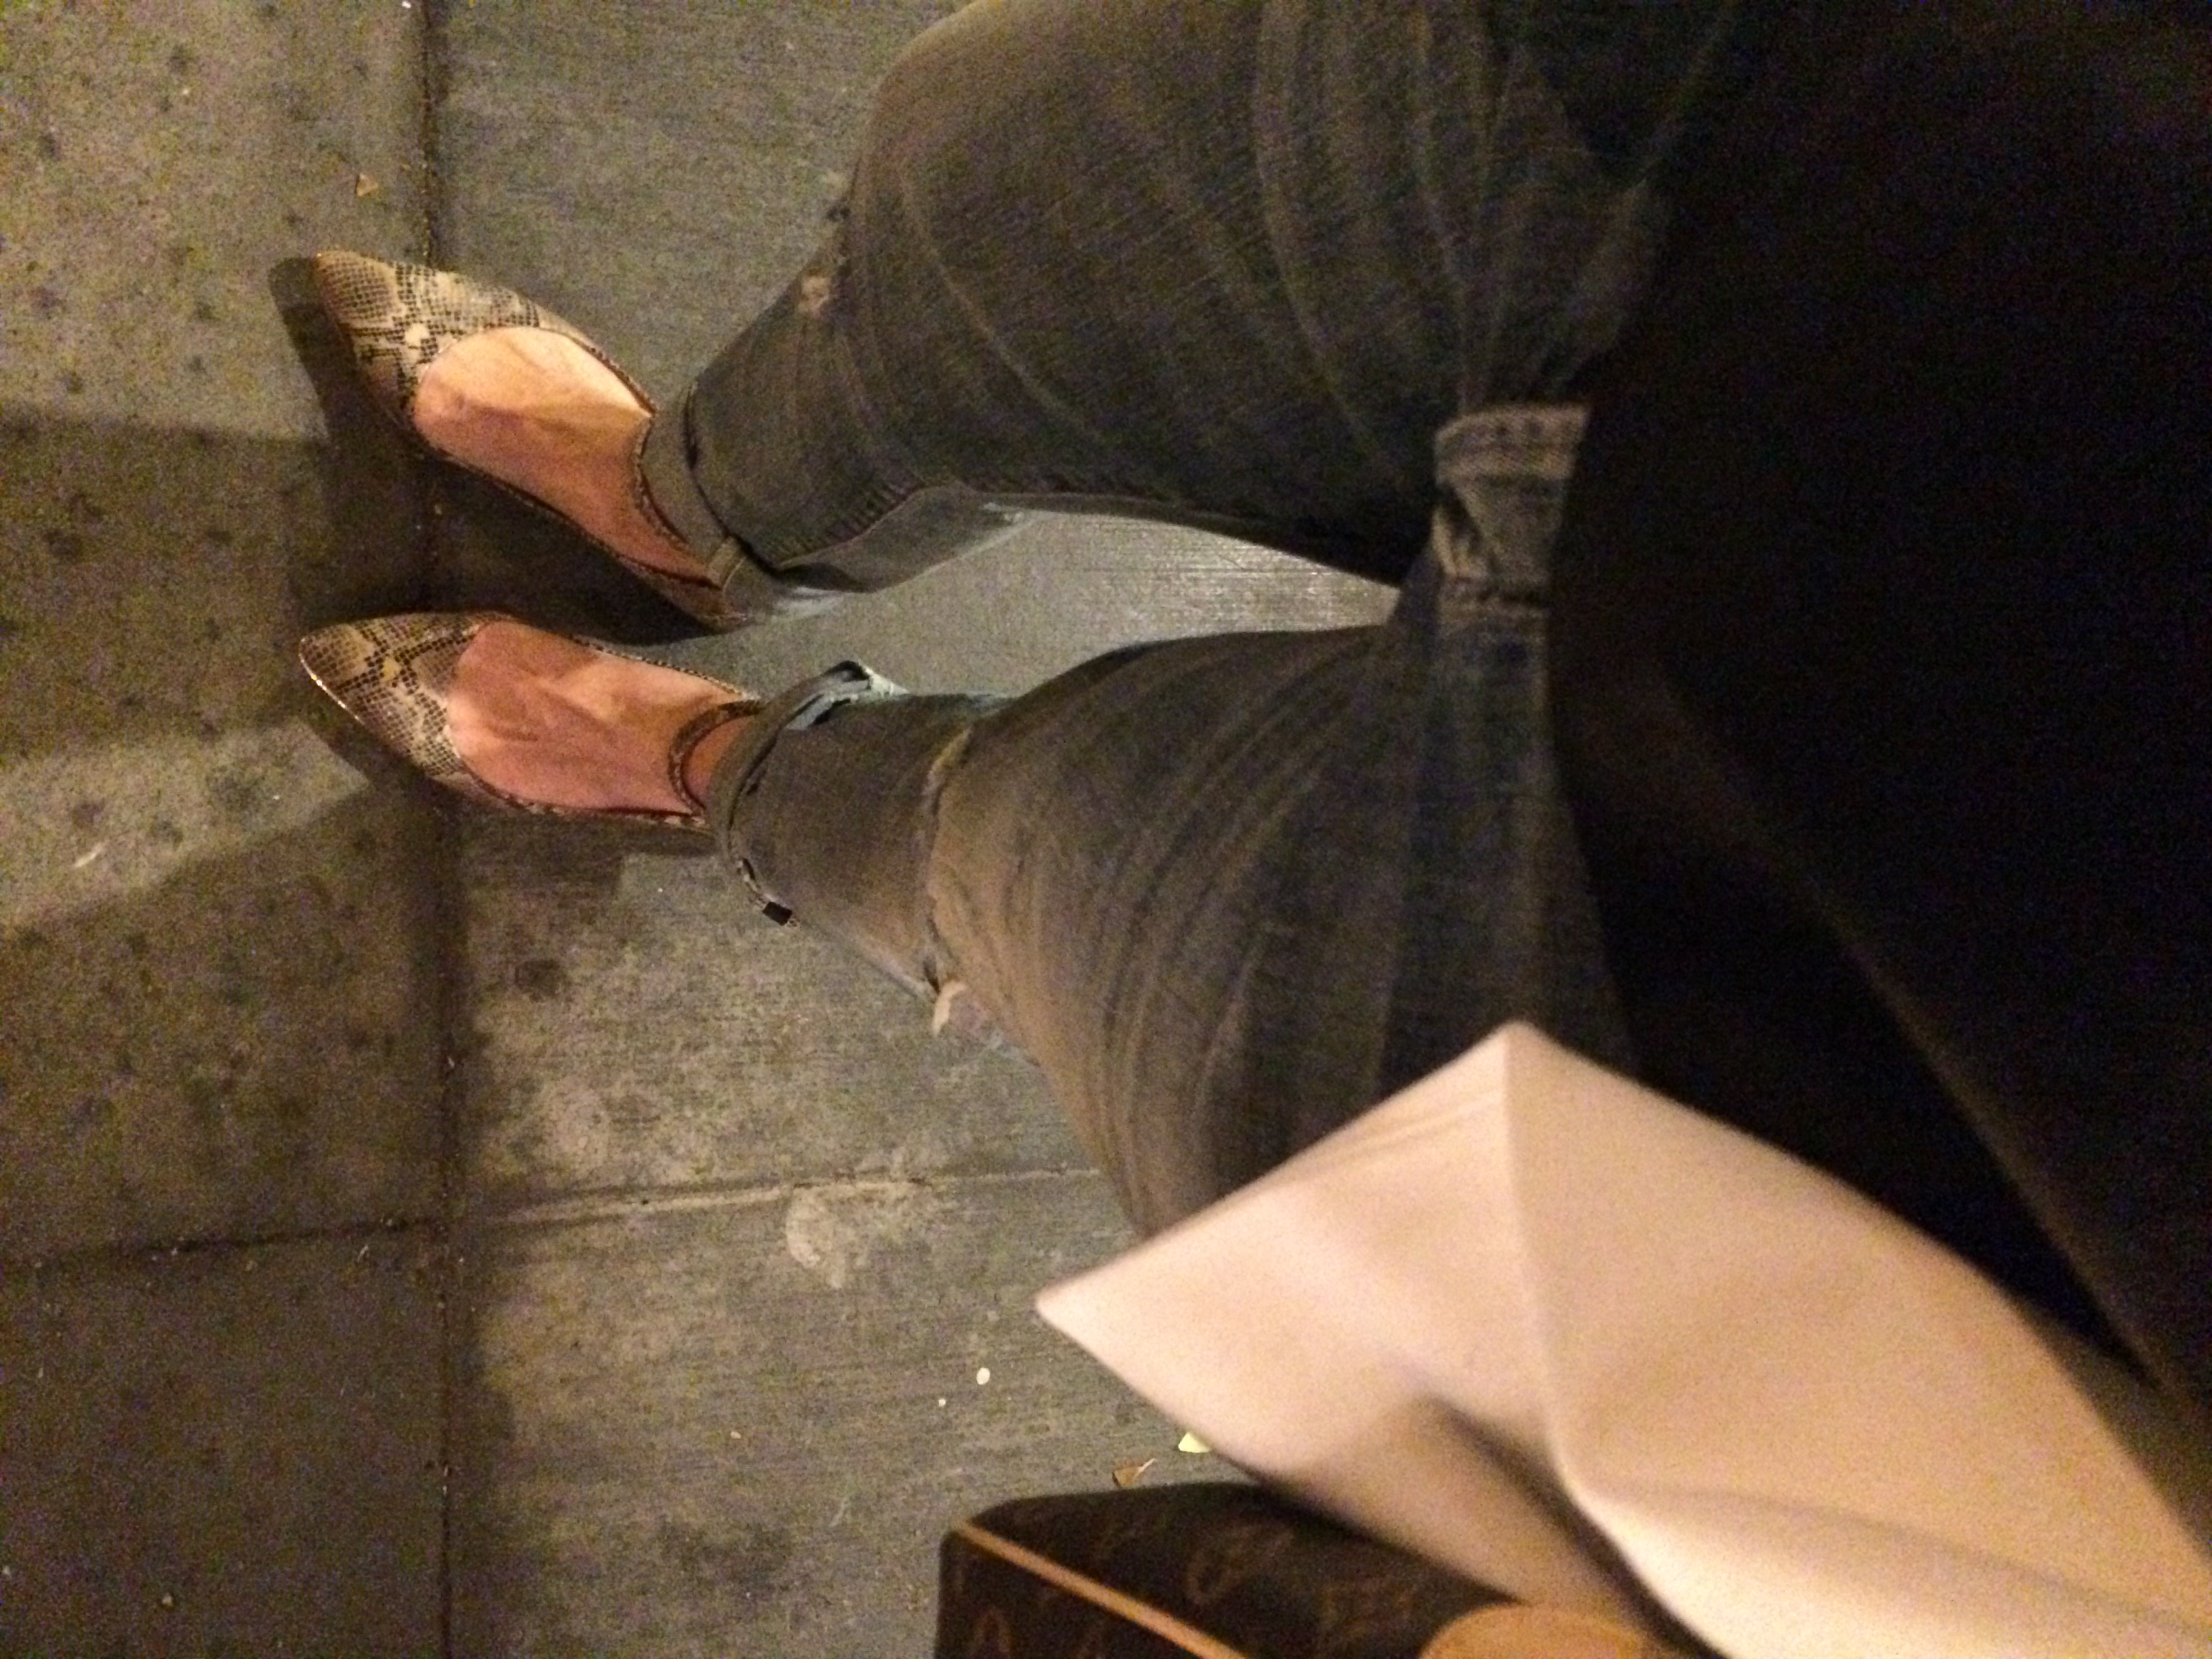 Pointed toe flats theperfectshoesto dress up distressed jeans when heels aren't happening.